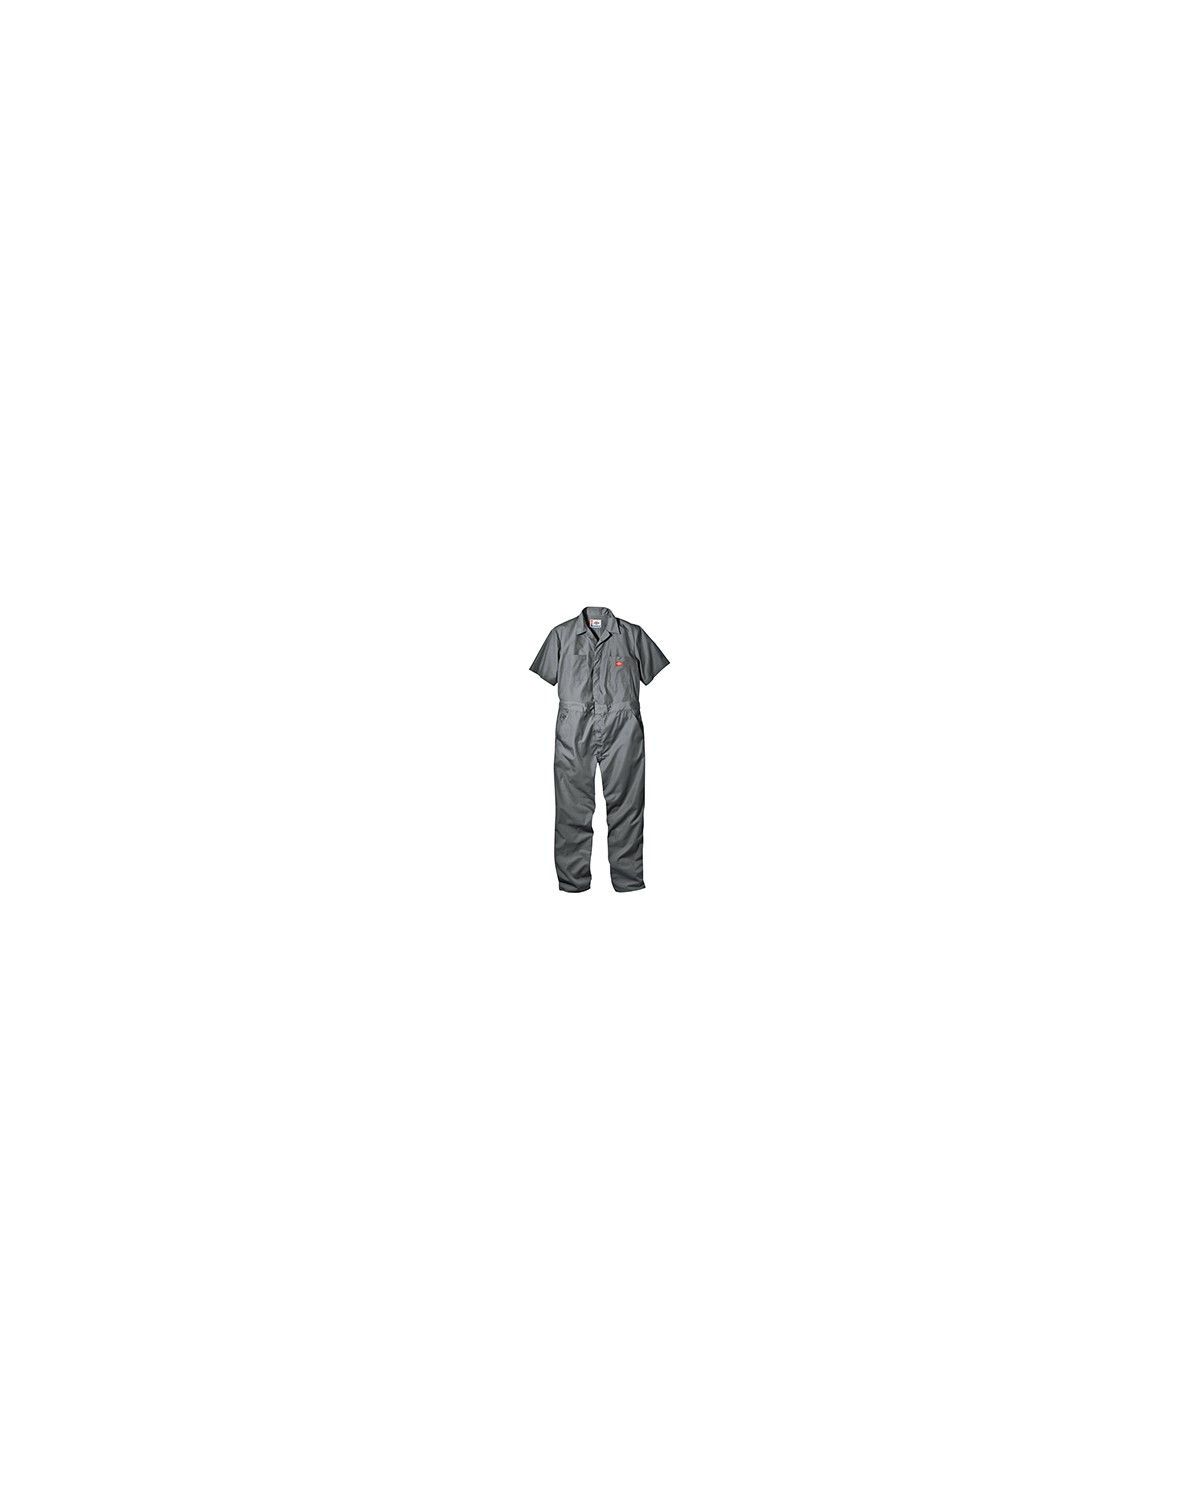 33999 Dickies GRAY 2XL